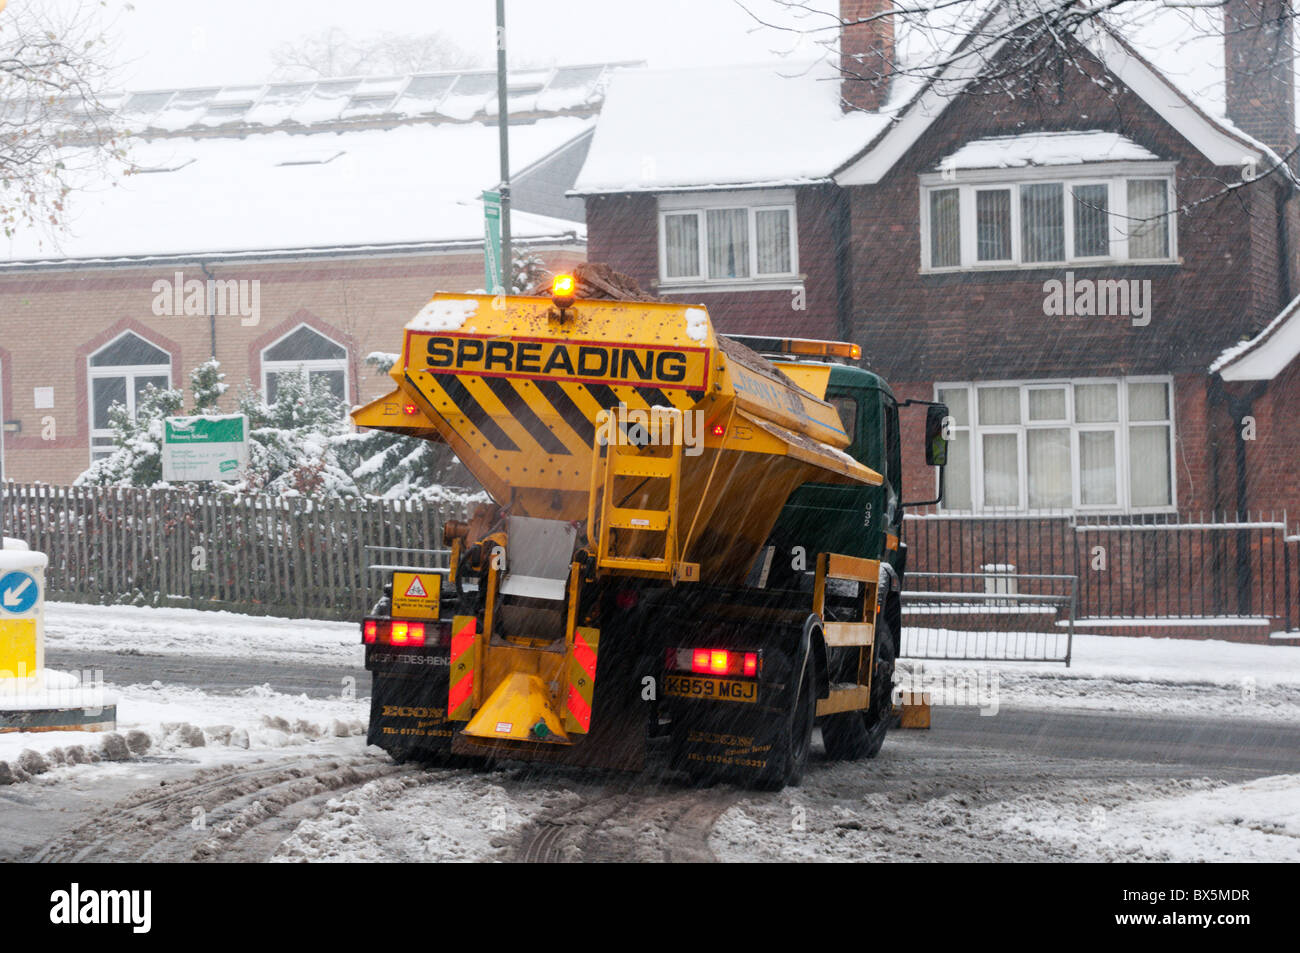 A gritting lorry spreading grit or salt over a suburban road in South London during a snowstorm - Stock Image